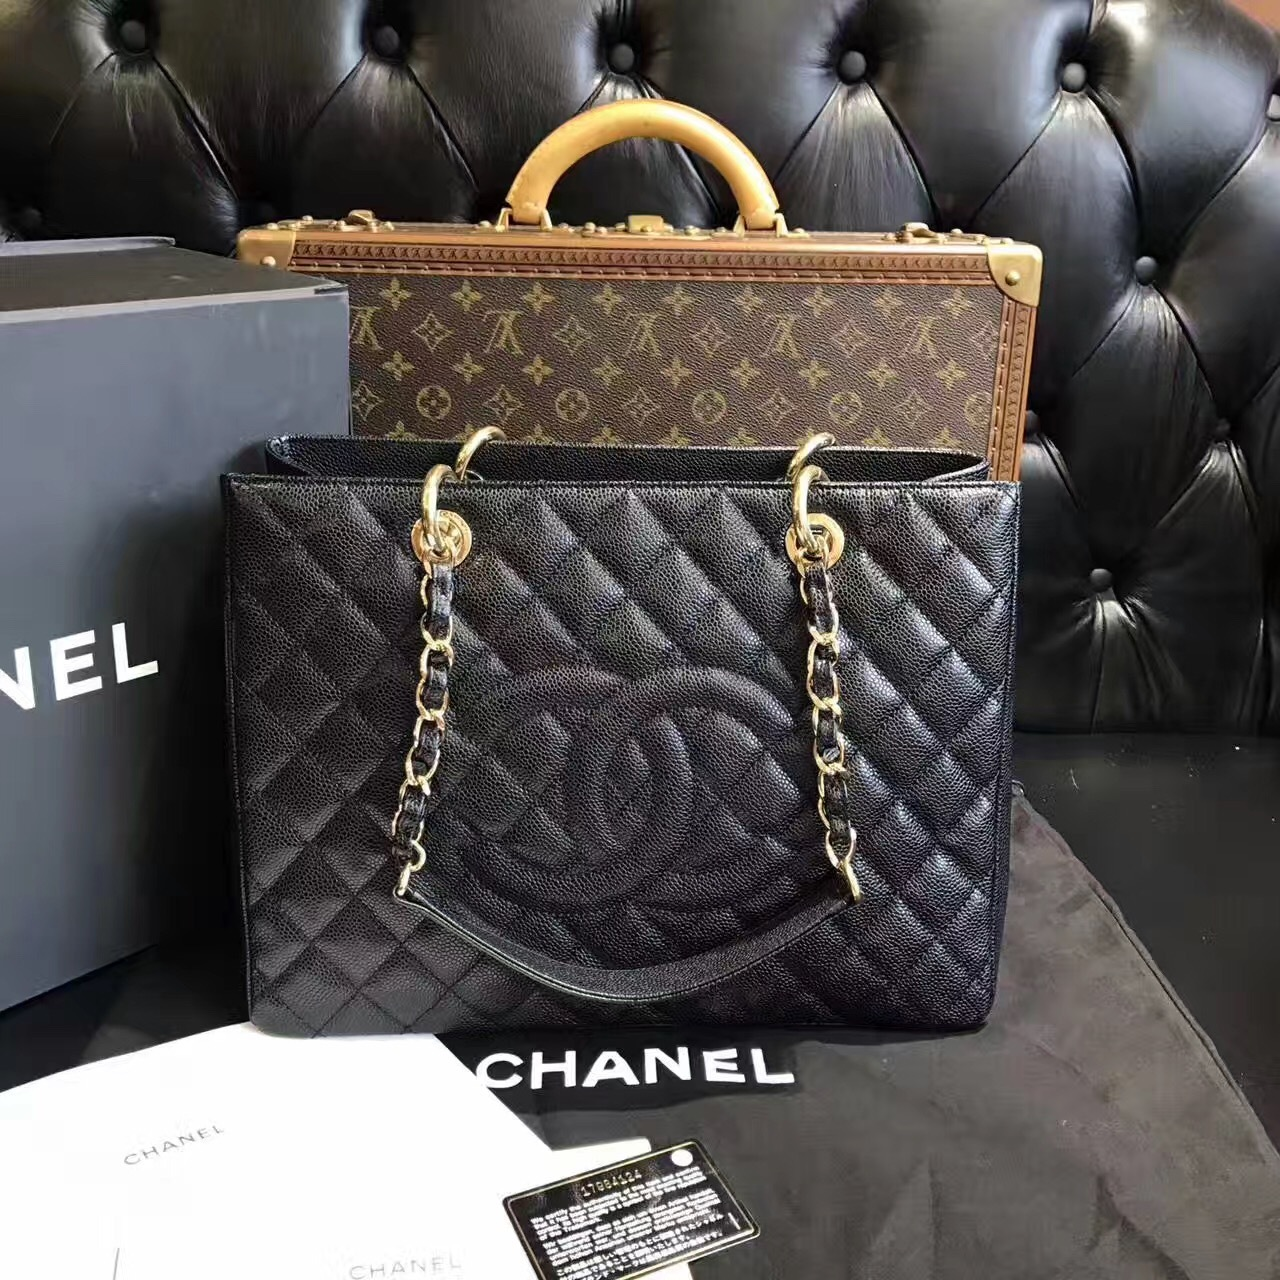 45ac8c3c6574 100% AUTHENTIC CHANEL CAVIAR GST GRAND SHOPPING TOTE BAG BLACK GHW ...